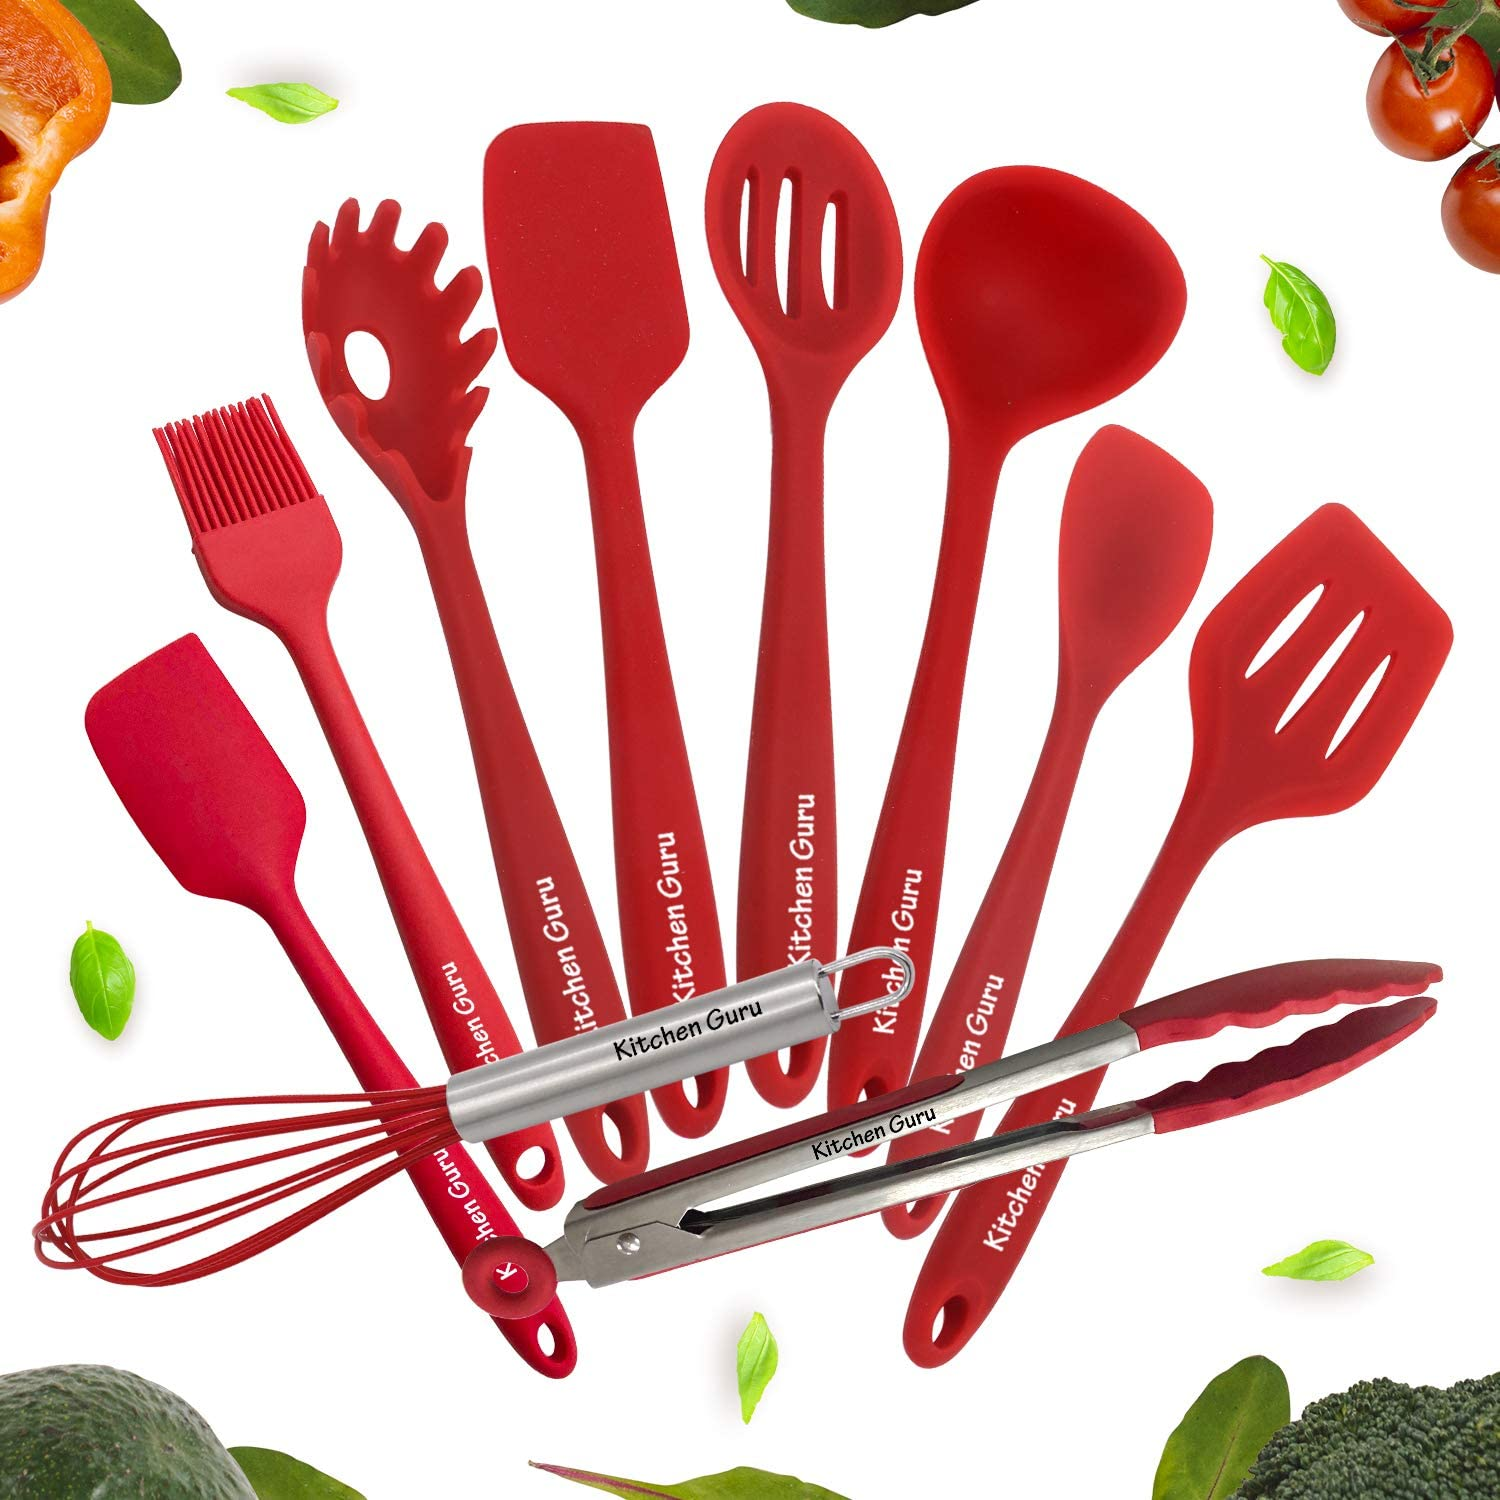 Kitchen Utensil 10-piece Set by Kitchen Guru – Cooking Utensils Including Silicone Spatula, Non-Stick, Non-Scratch, Cooking Utensils Set – 10 Piece Silicone Cooking Utensils Set For Every Home